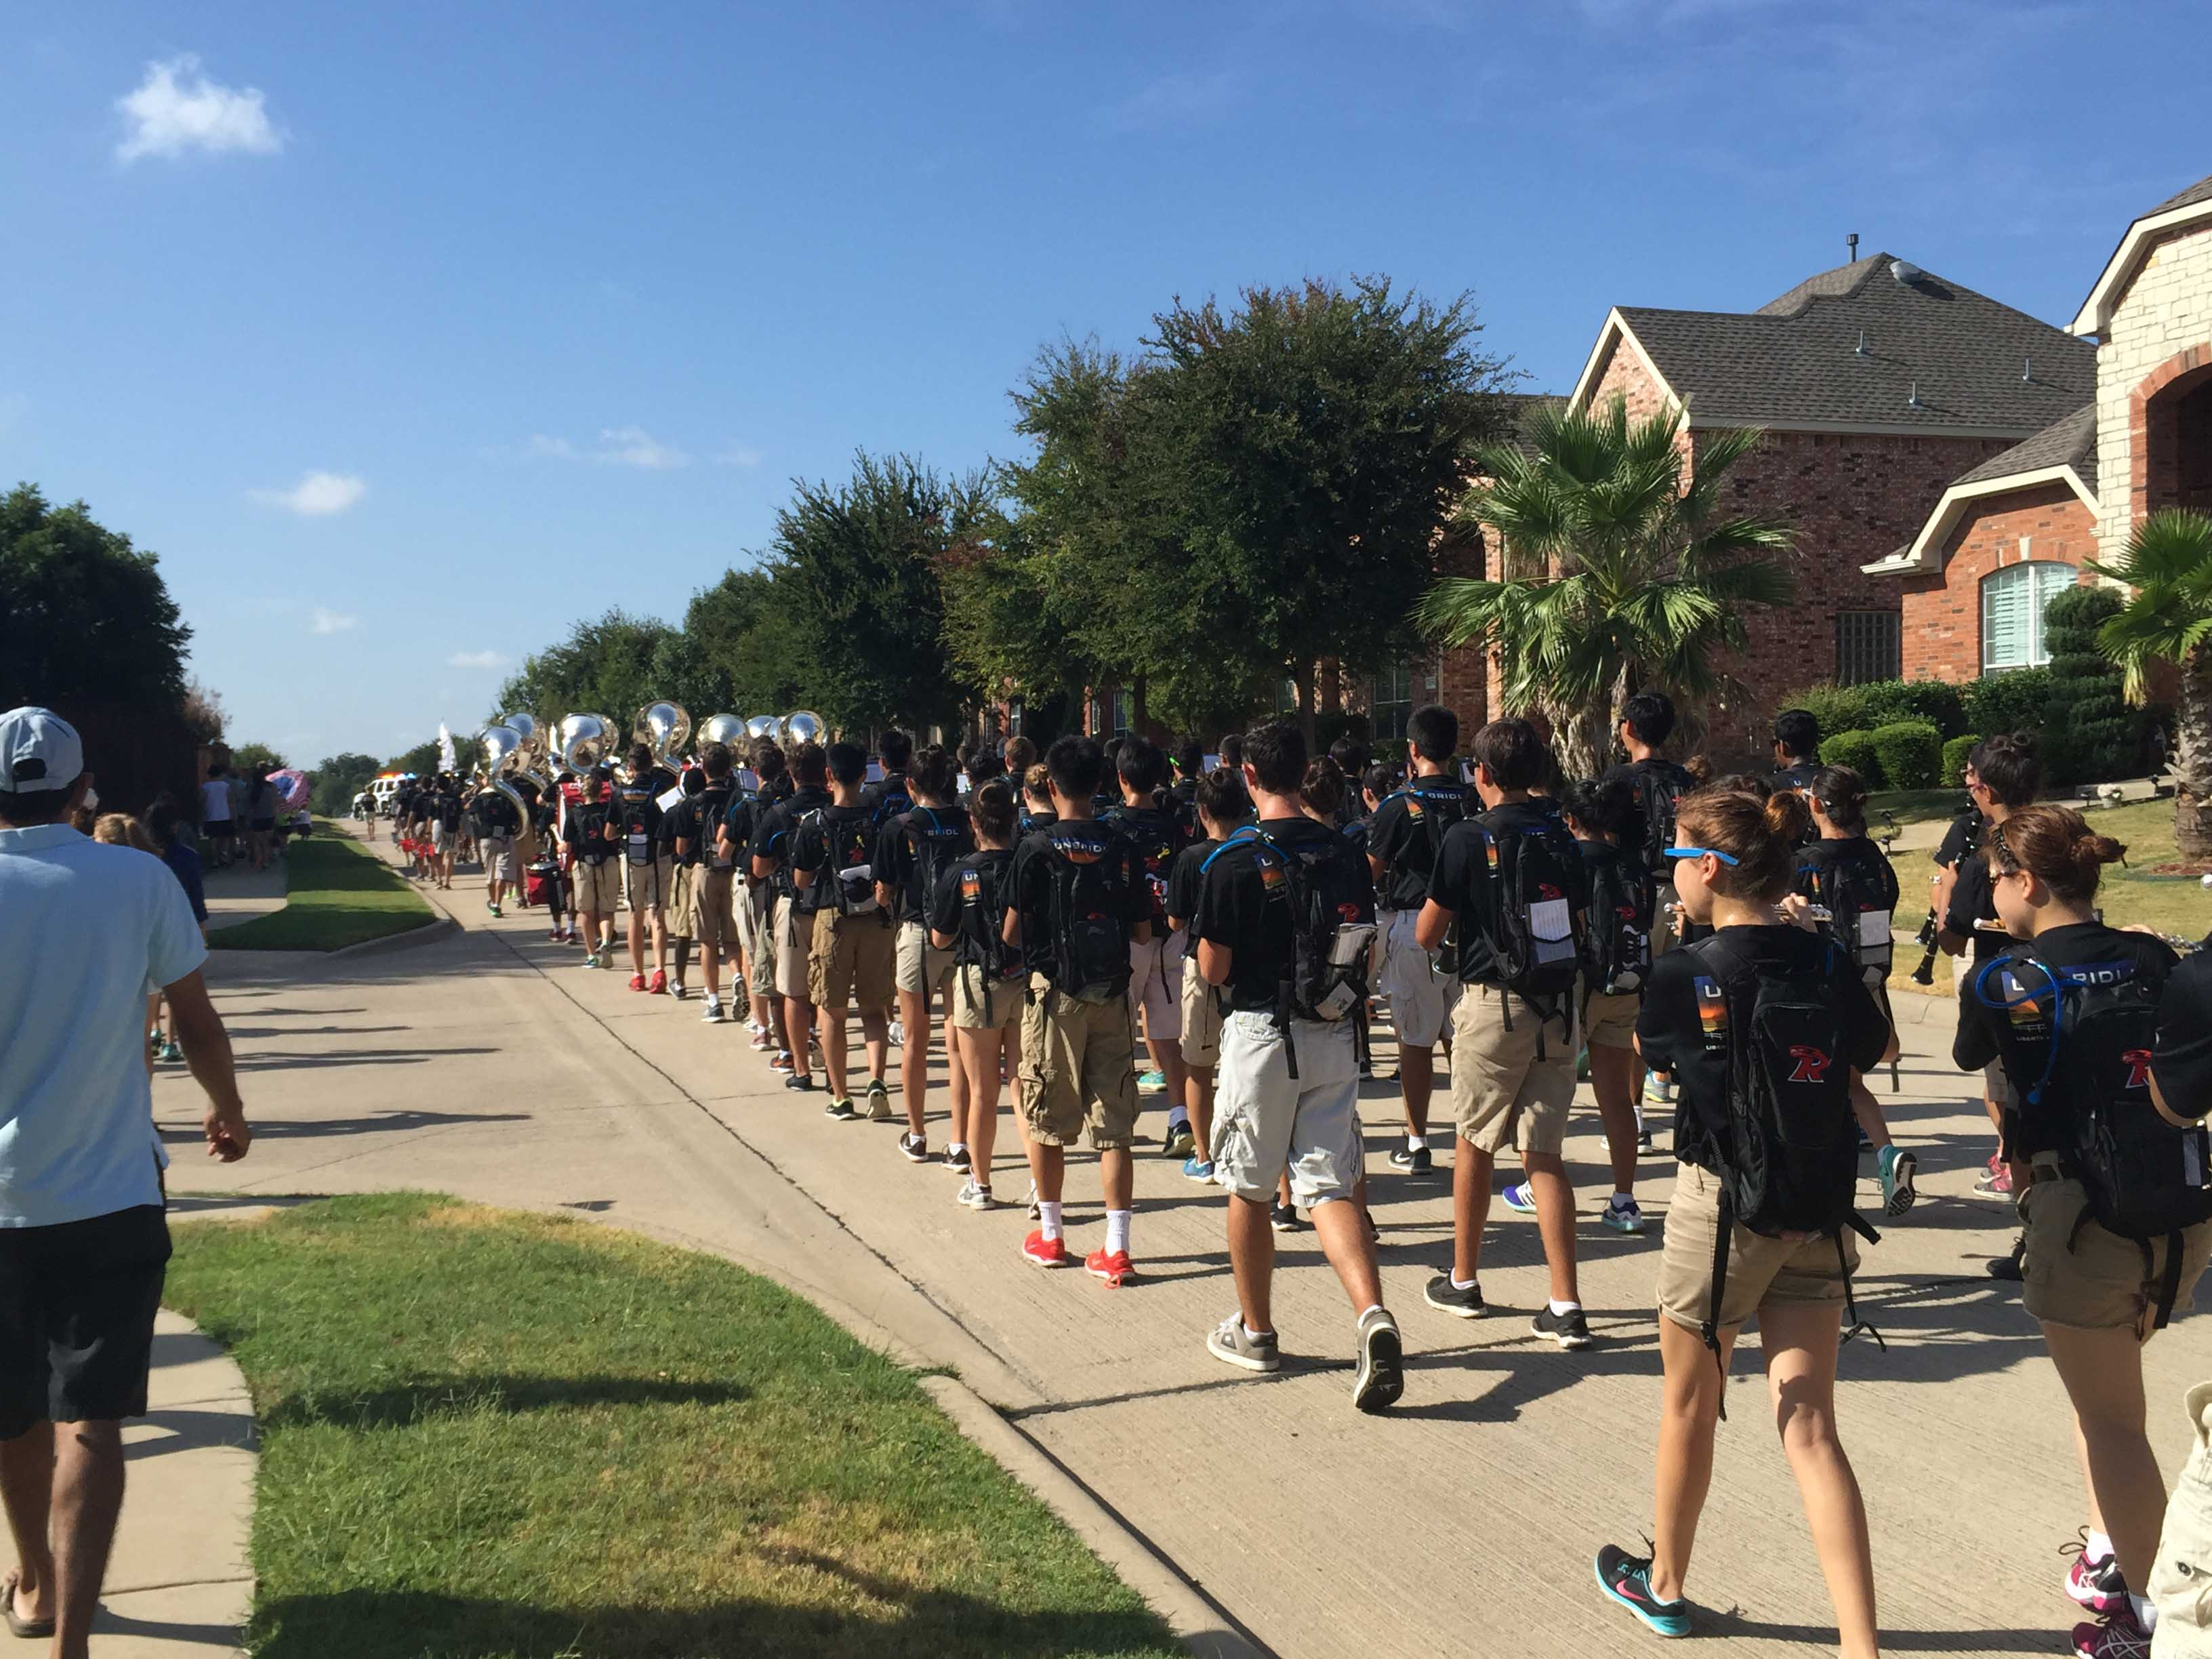 Making their way through the Turnbridge Manor and Hunters Creek neighborhoods, the school's marching band filled the street, temporarily preventing cars from driving down it.